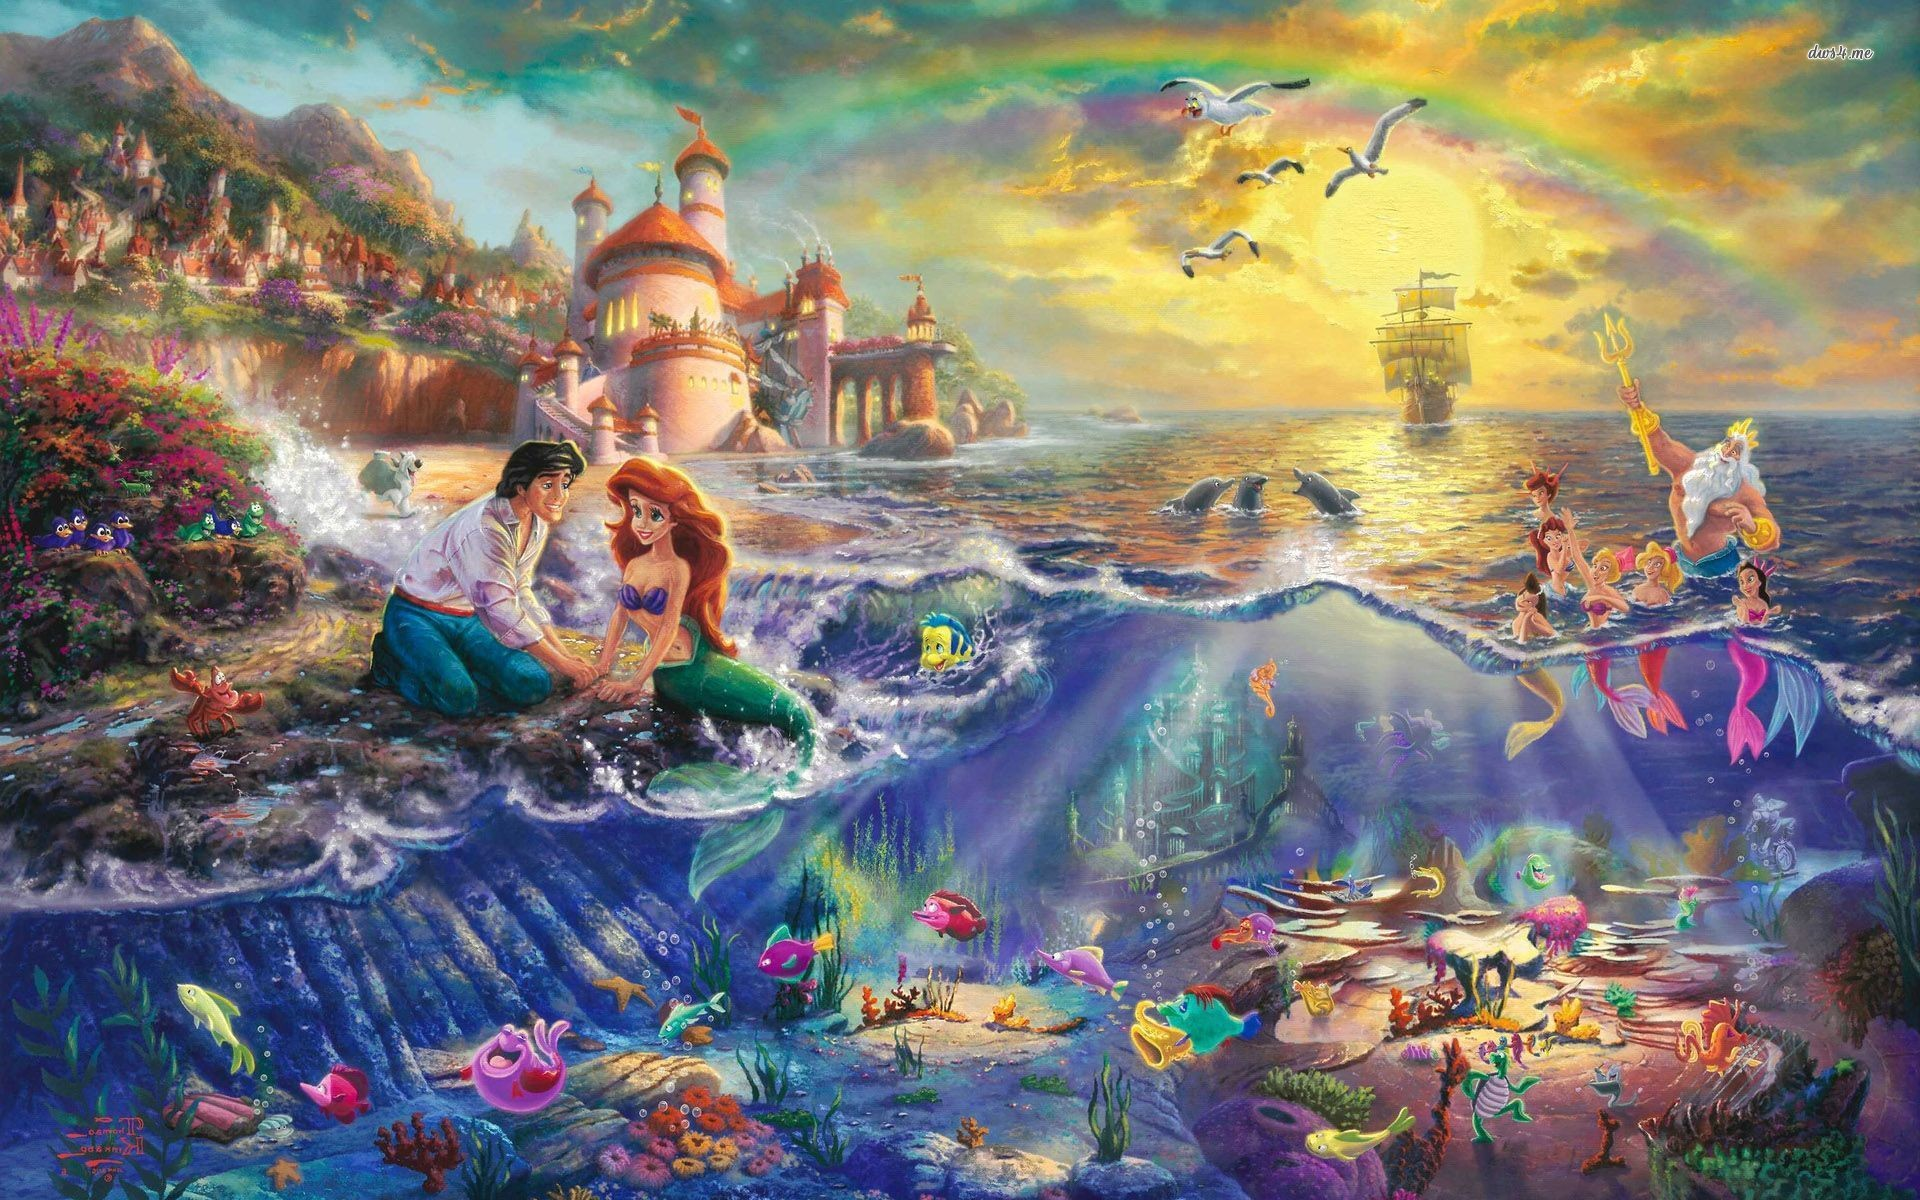 2500x1672 LITTLE MERMAID Disney Fantasy Animation Cartoon Adventure Family 1littlemermaid Ariel Princess Ocean Sea Underwater Wallpaper